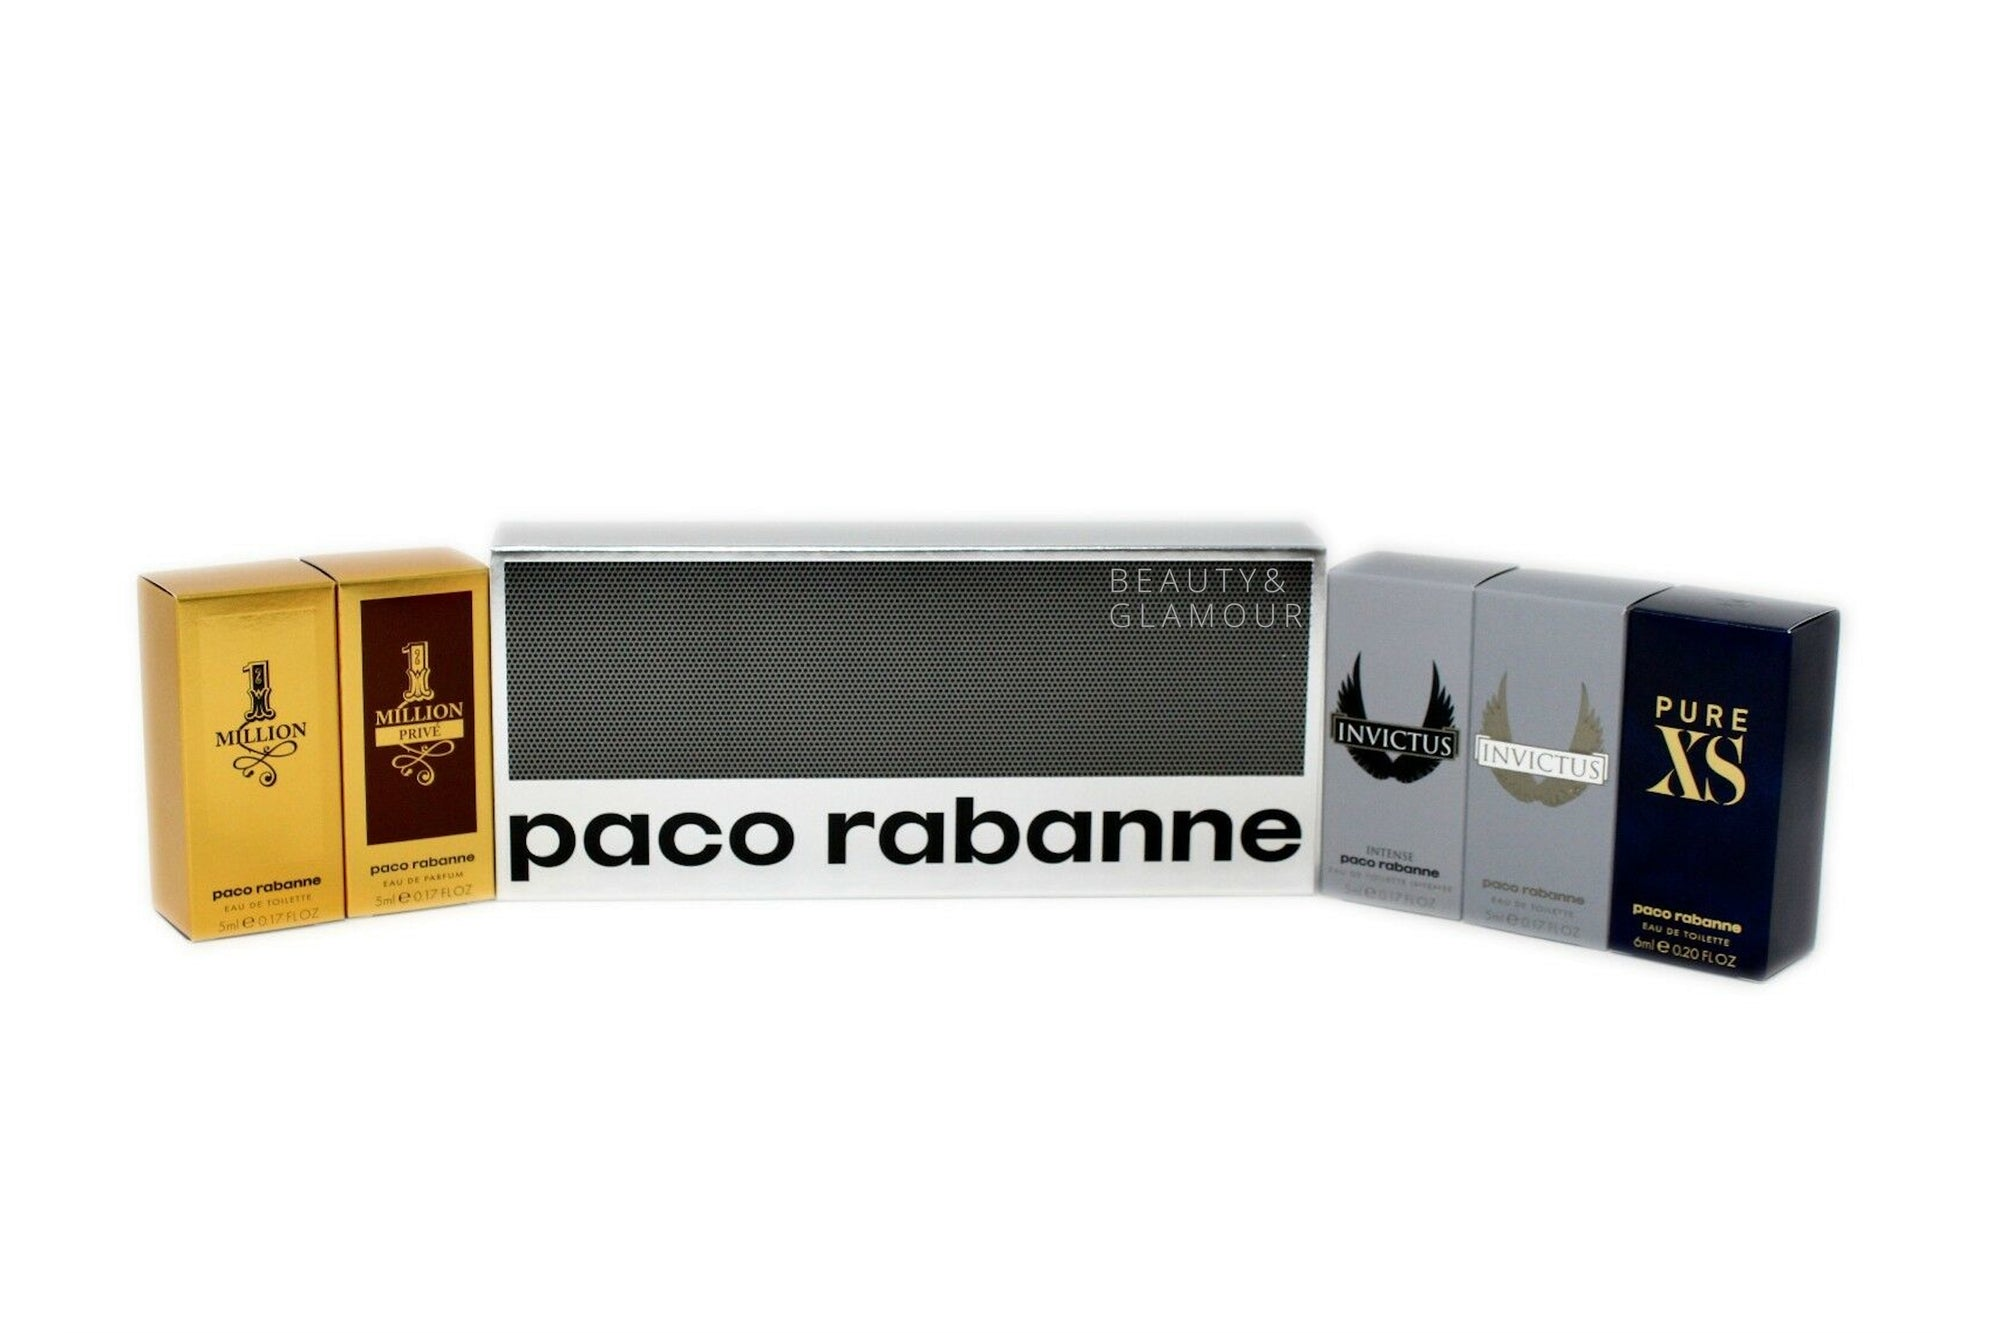 PACO RABANNE 1 MILLION EAU DE TOILETTE SPLASH 5 ML/0.17 FL.OZ.  PACO RABANNE 1 MILLION PRIVE EAU DE PARFUM SPLASH 5 ML/0.17 FL.OZ.  PACO RABANNE INVICTUS EAU DE TOILETTE SPLASH 5 ML/0.17 FL.OZ.  PACO RABANNE INVICTUS INTENSE EAU DE TOILETTE SPLASH 5 ML/0.17 FL.OZ. PACO RABANNE PURE XS EAU DE TOILETTE SPLASH 6 ML/0.20 FL.OZ.